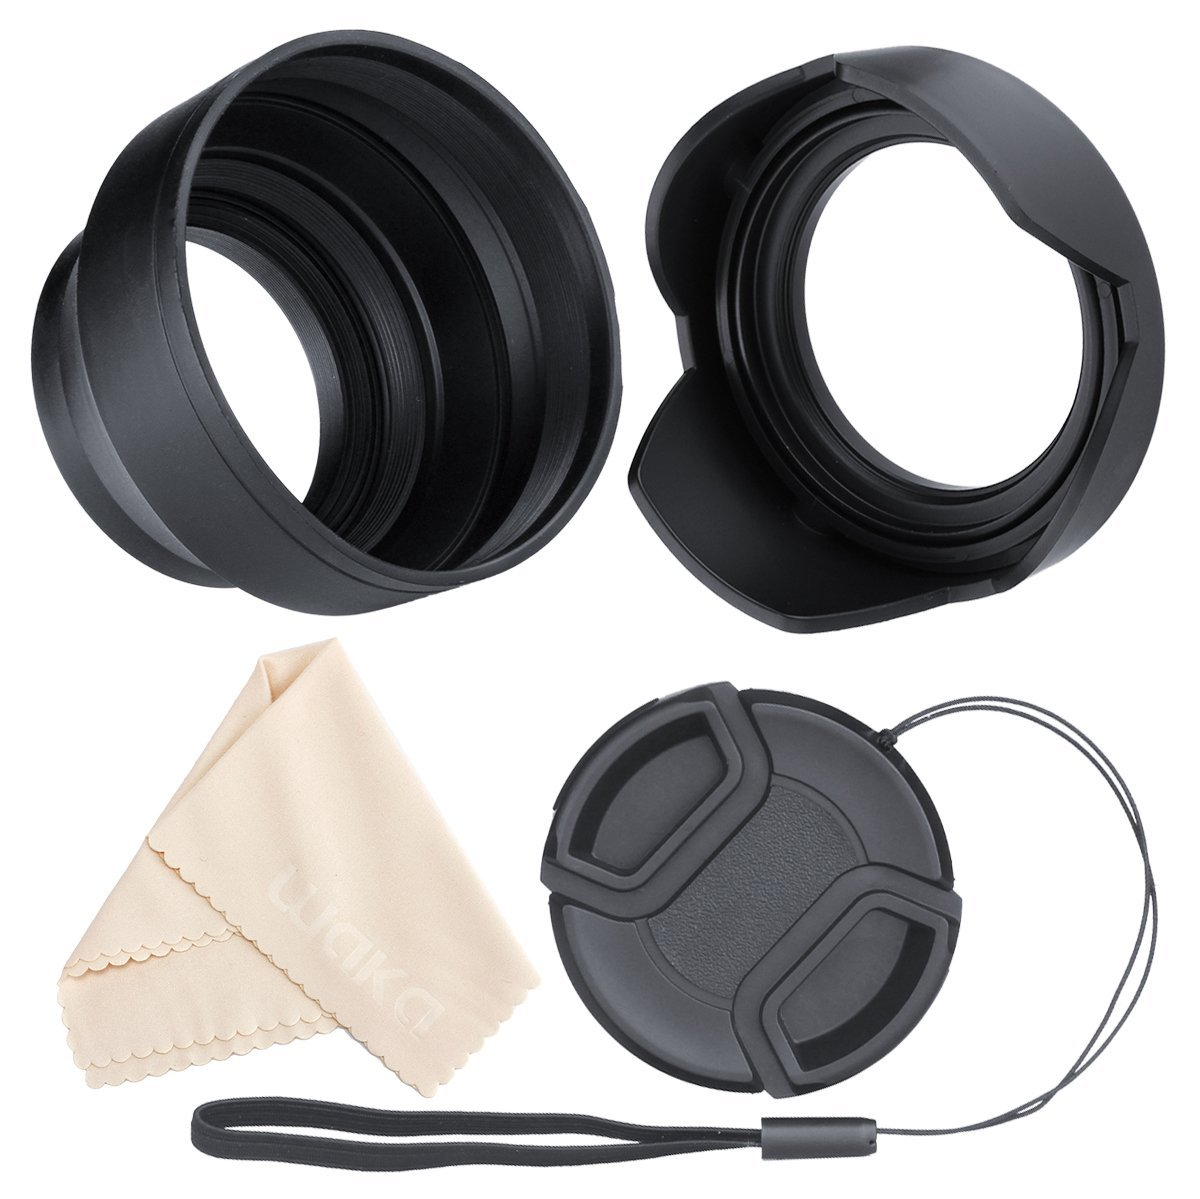 RIMMZZ TD-LC-P6782 All-in-one versatile multi-sized Camera lens cap 67mm-82mm Product Name RIMMZZ Pro Universal lens cap fits many brands and lens size 67mm to 82mm Double sided